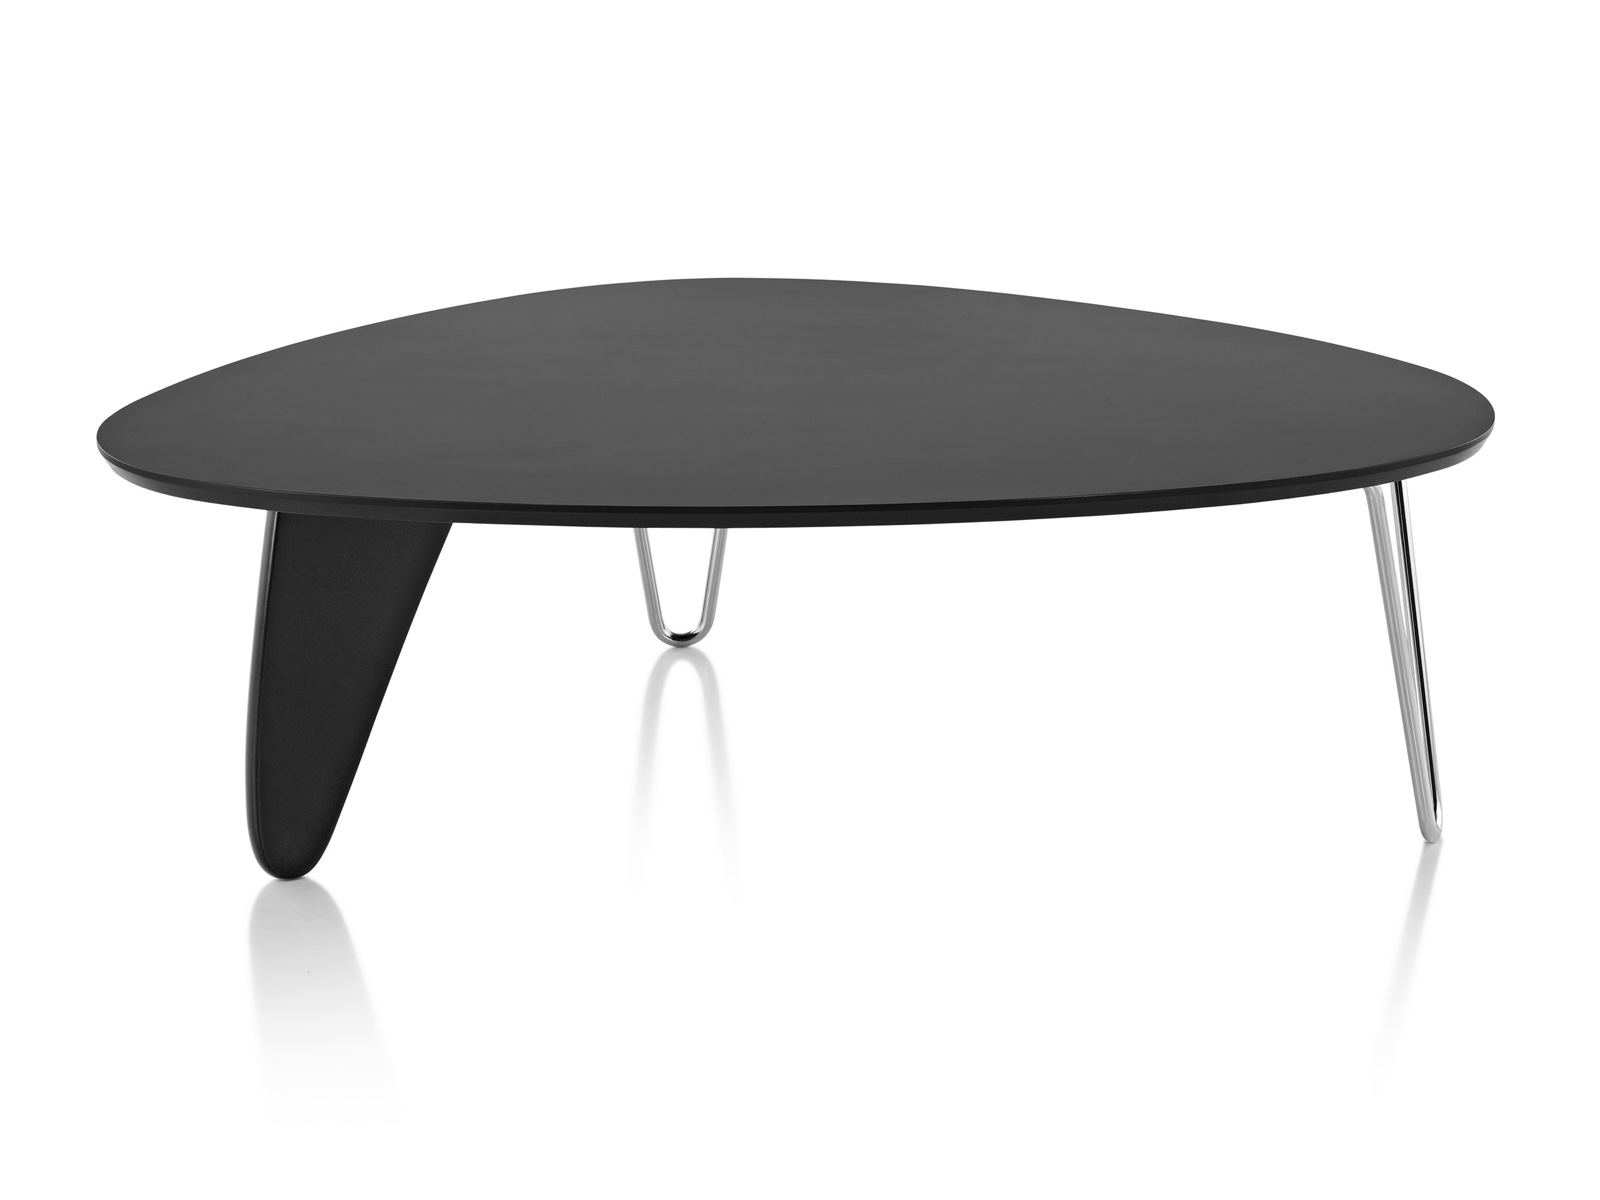 A Noguchi Rudder Table with a black finish.